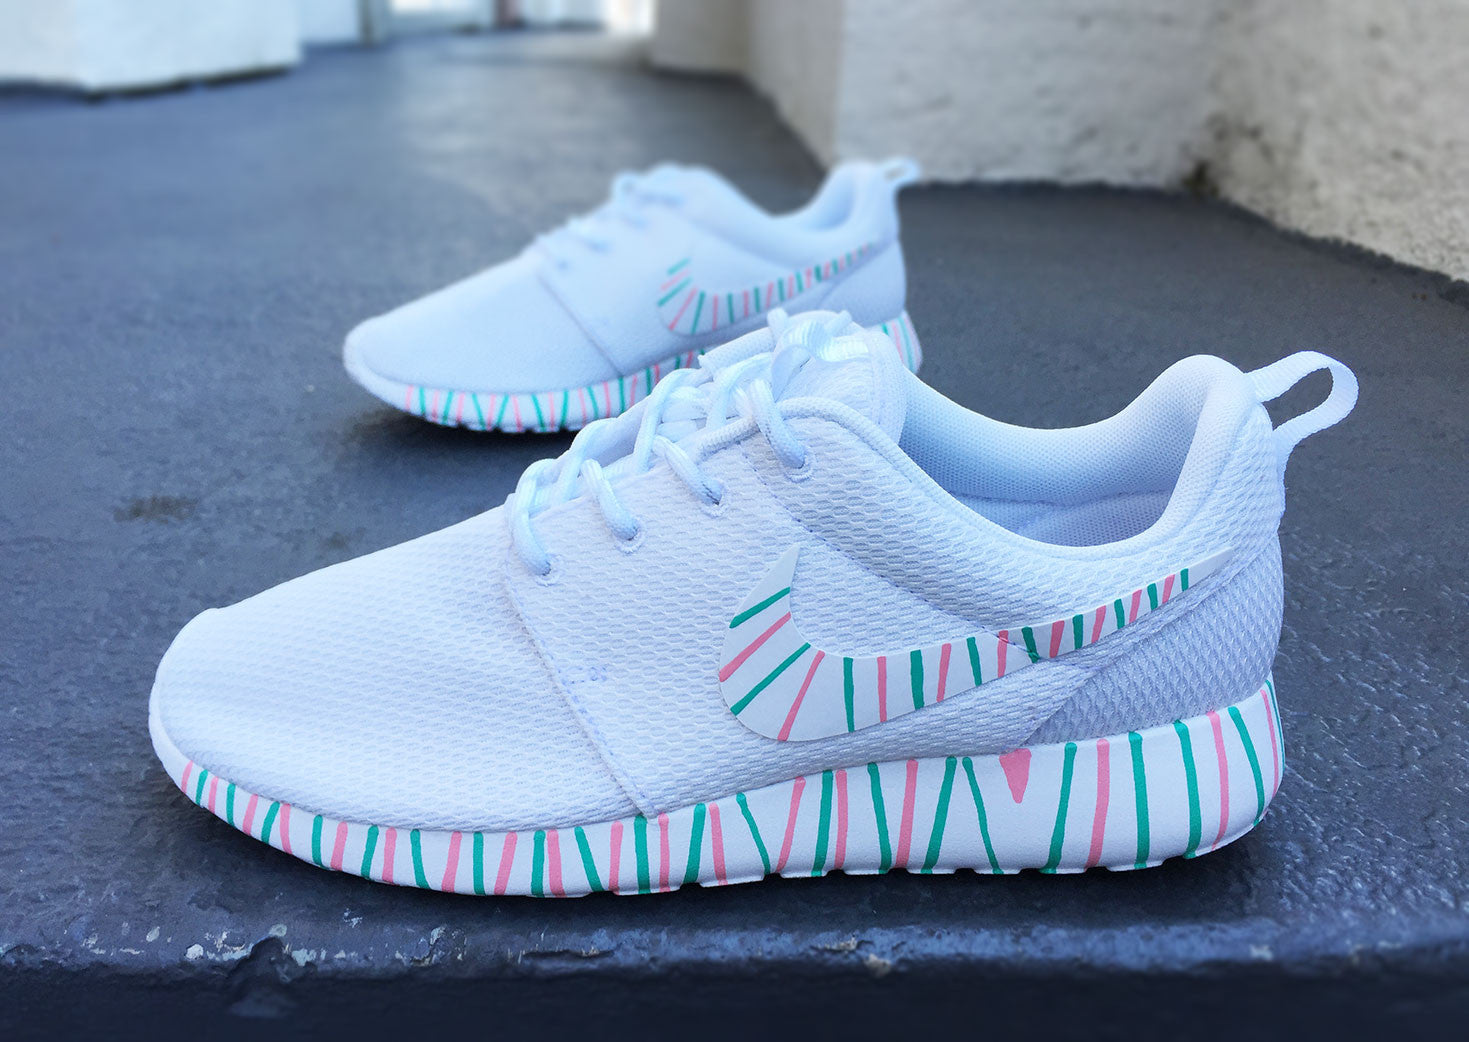 newest 8740c 49a07 Womens Custom Nike Roshe Run sneakers, South Beach teal, Pink petals, Customized  sneakers, Fashionable design, trendy and cute, white on white